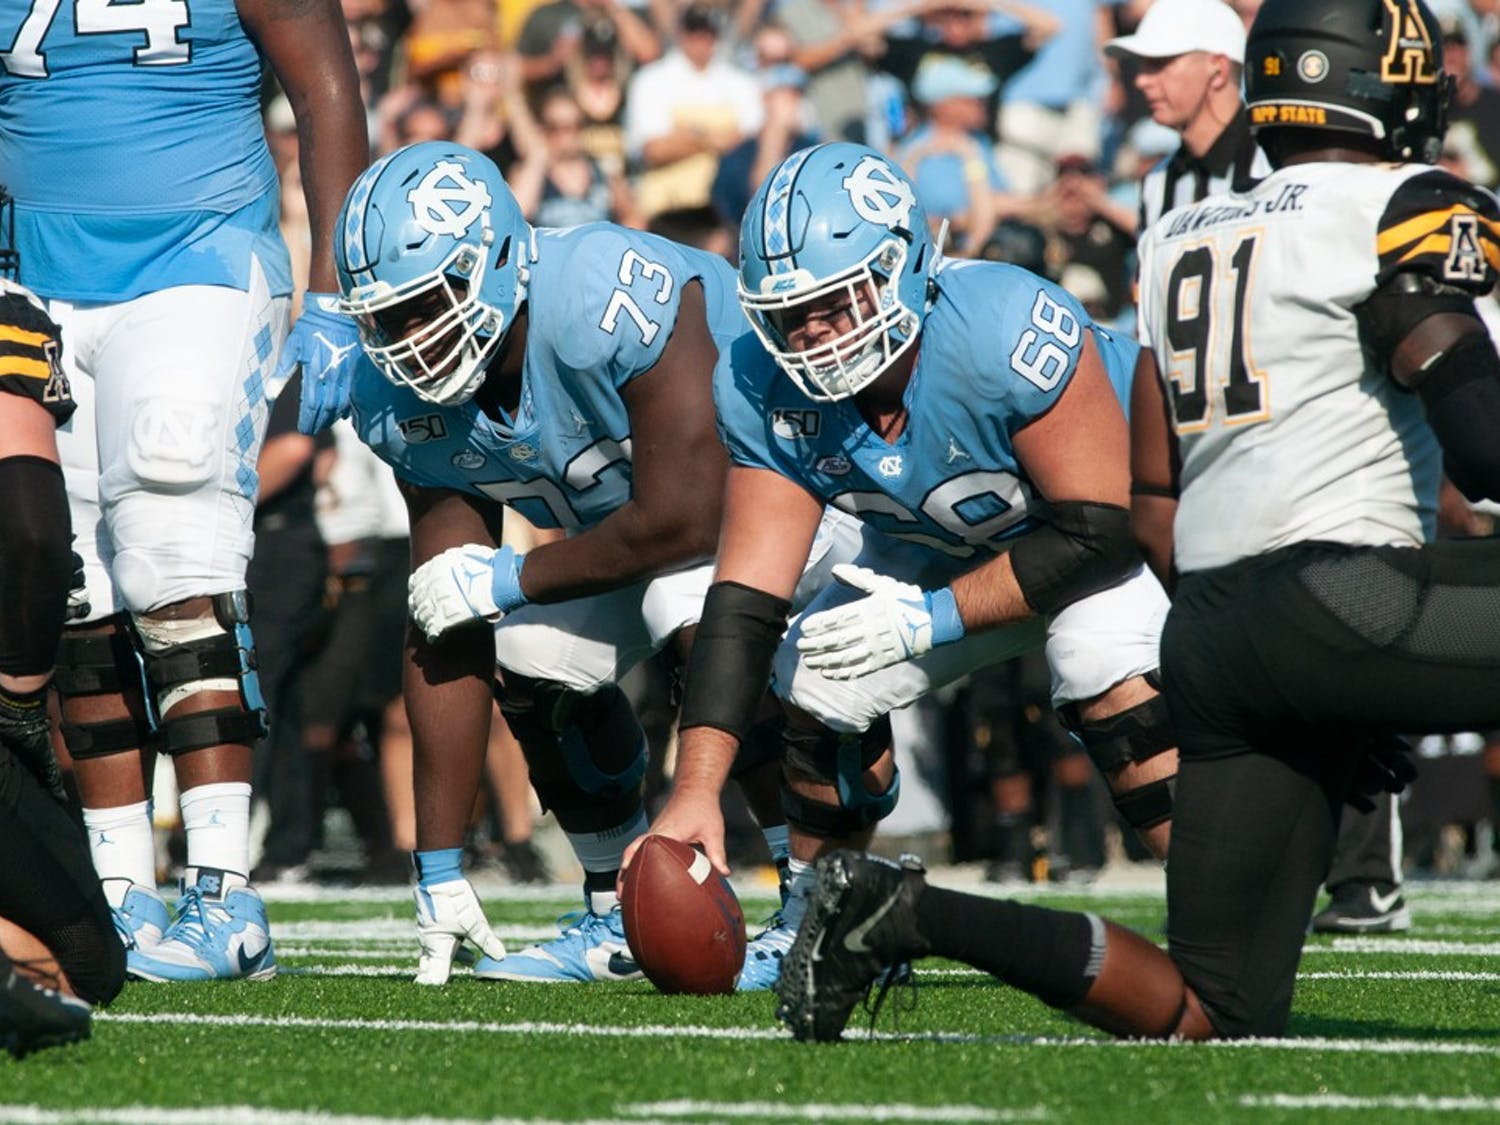 UNC offensive linemen (68) Brian Anderson and (73) Marcus McKethan prepare to snap the ball in the game against Appalachian State on Saturday Sept. 21, 2019.